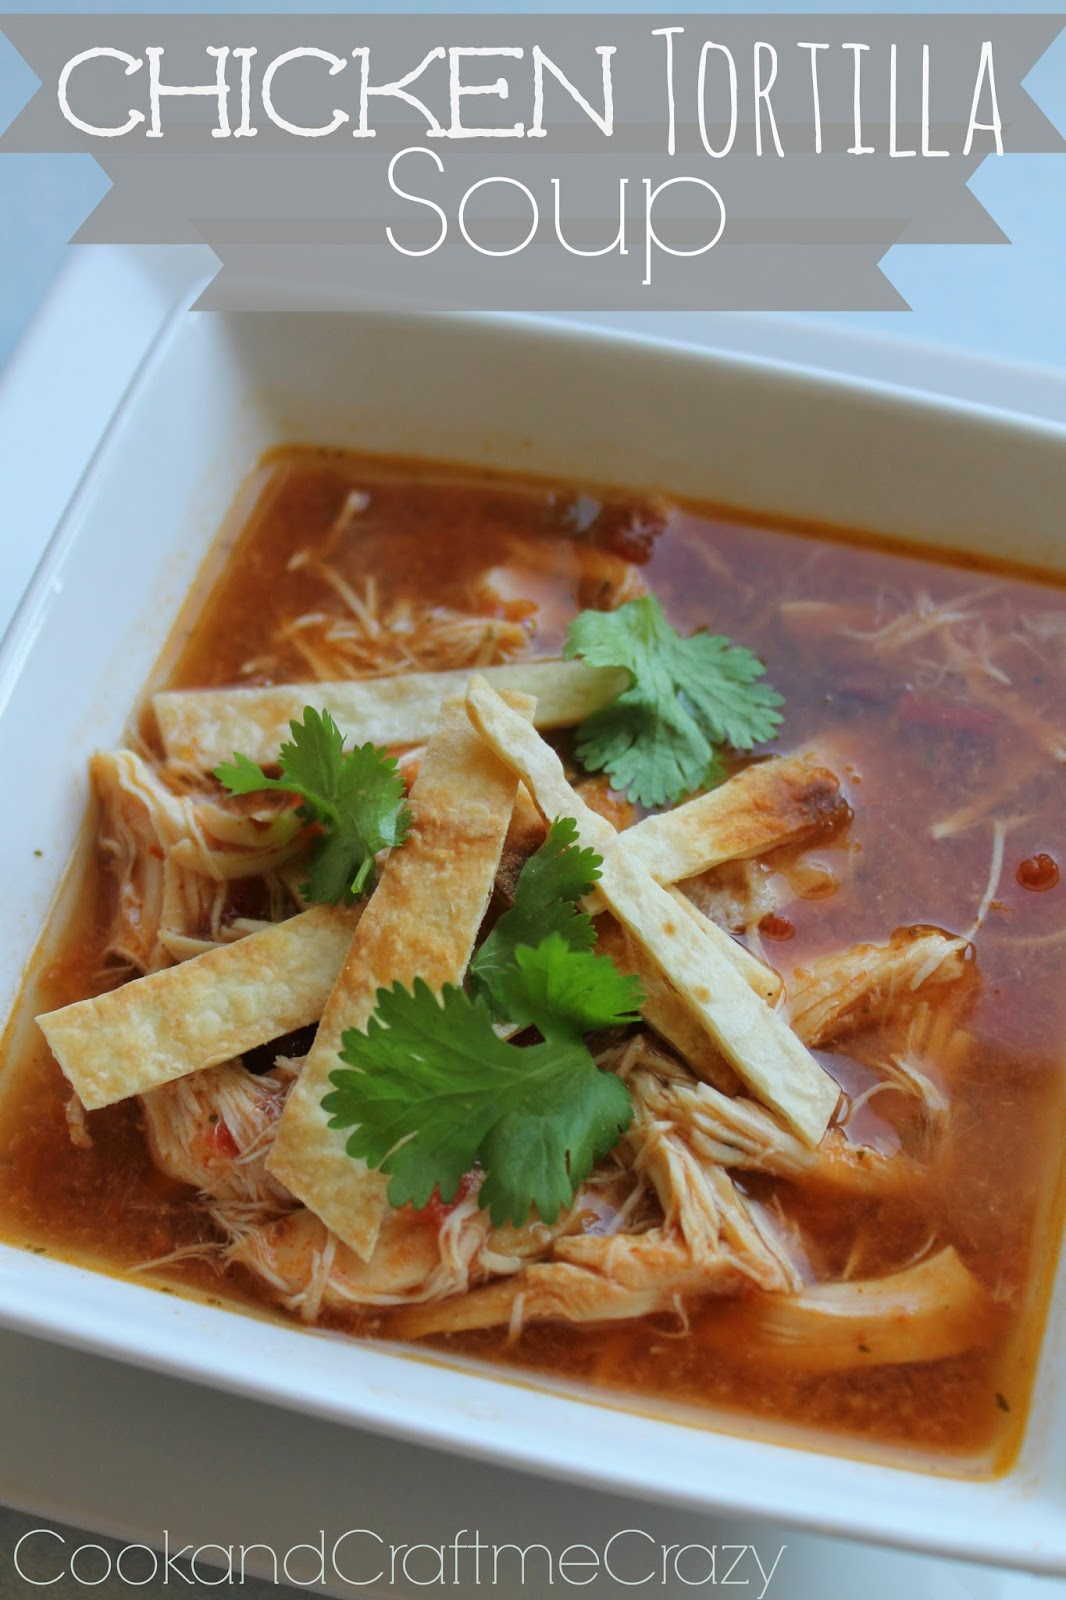 Cook and Craft Me Crazy: Chicken Tortilla Soup